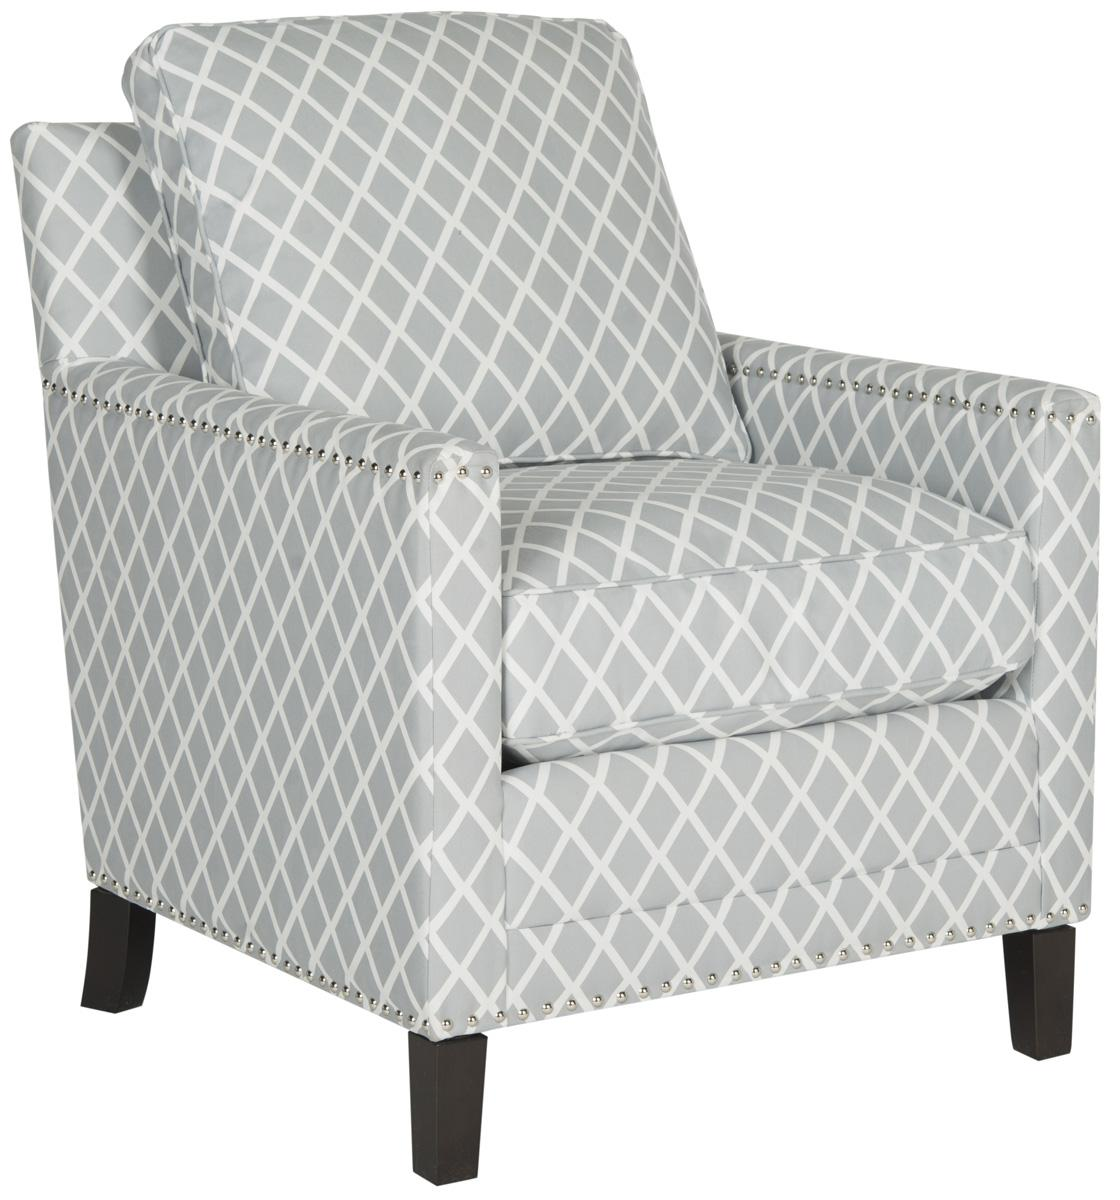 BUCKLER CLUB CHAIR   SILVER NAIL HEADS MCR4613E ACCENT CHAIRS. Color: Grey  / White